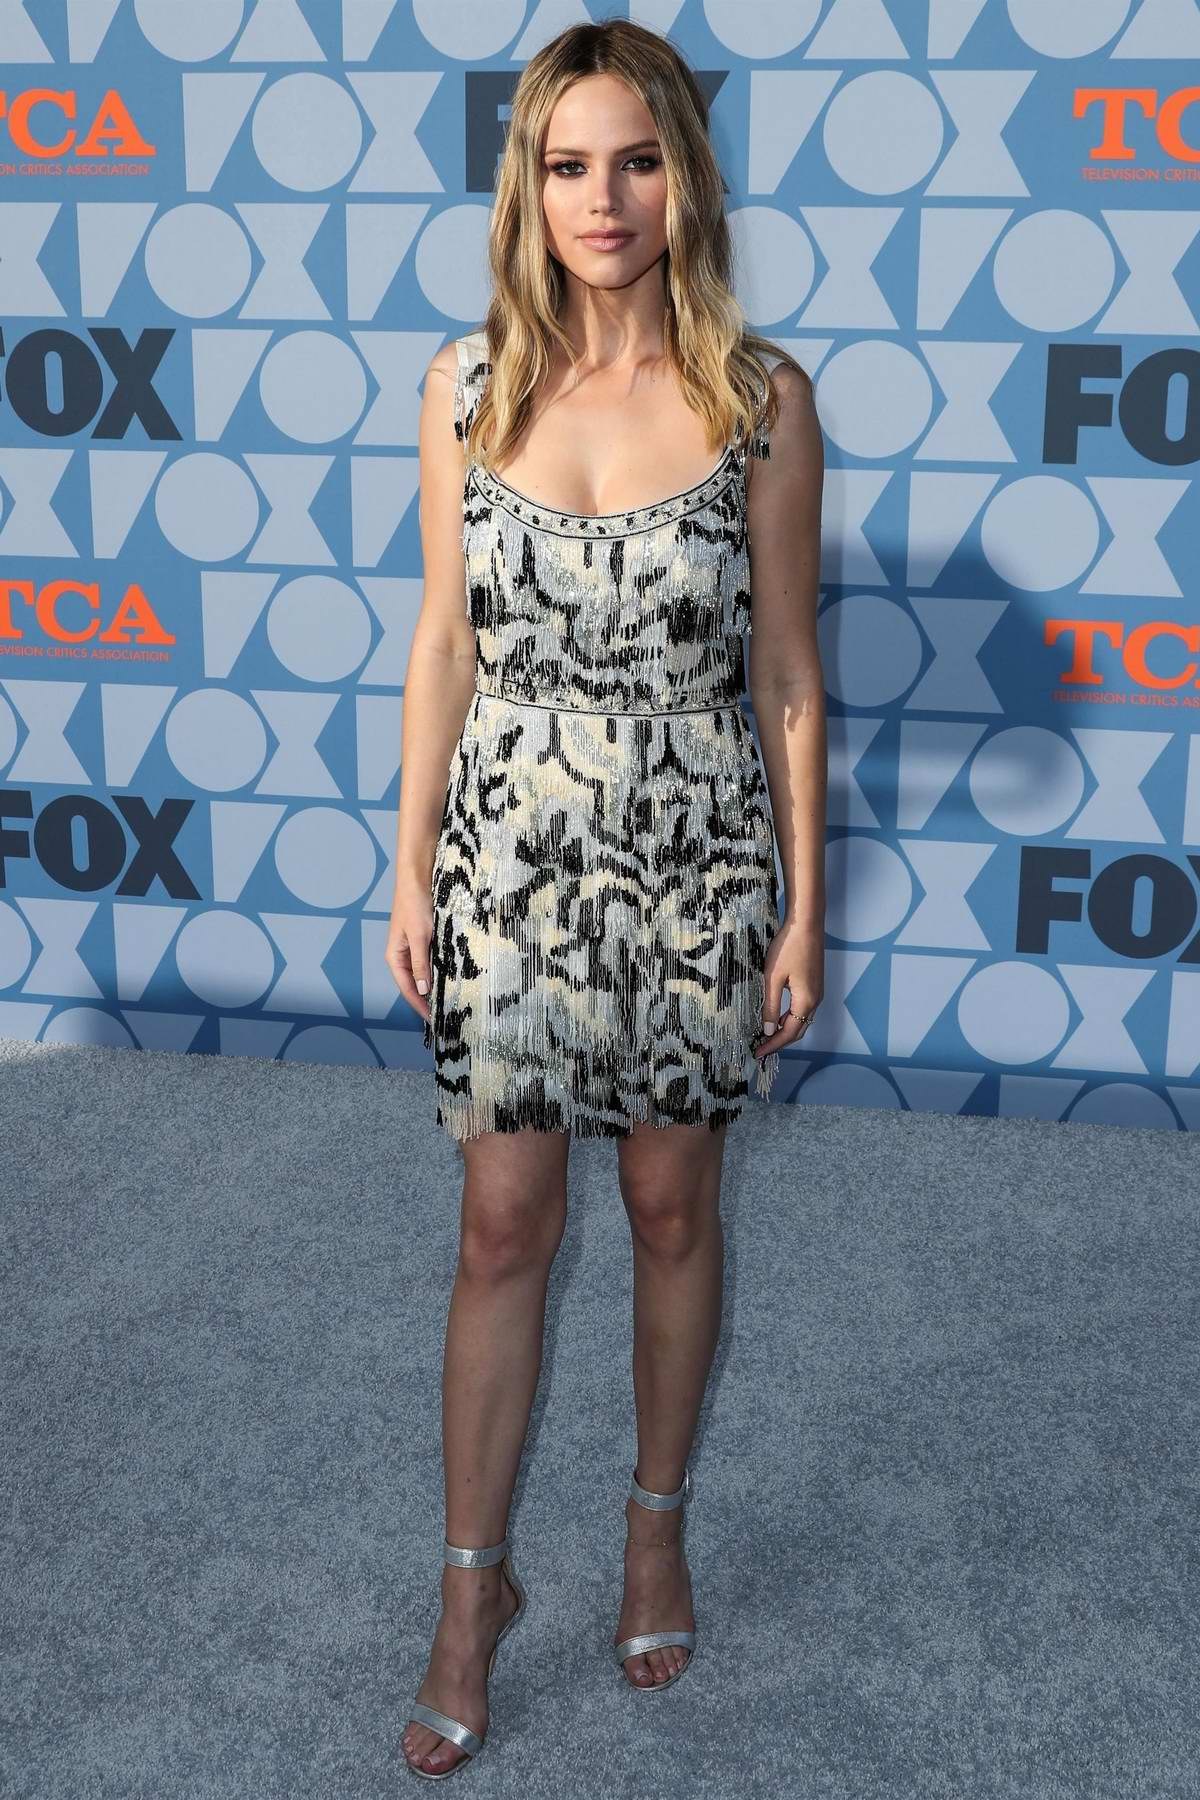 Halston Sage attends the Fox Network's 2019 TCA Summer Press Tour Party at FOX Studios in Los Angeles